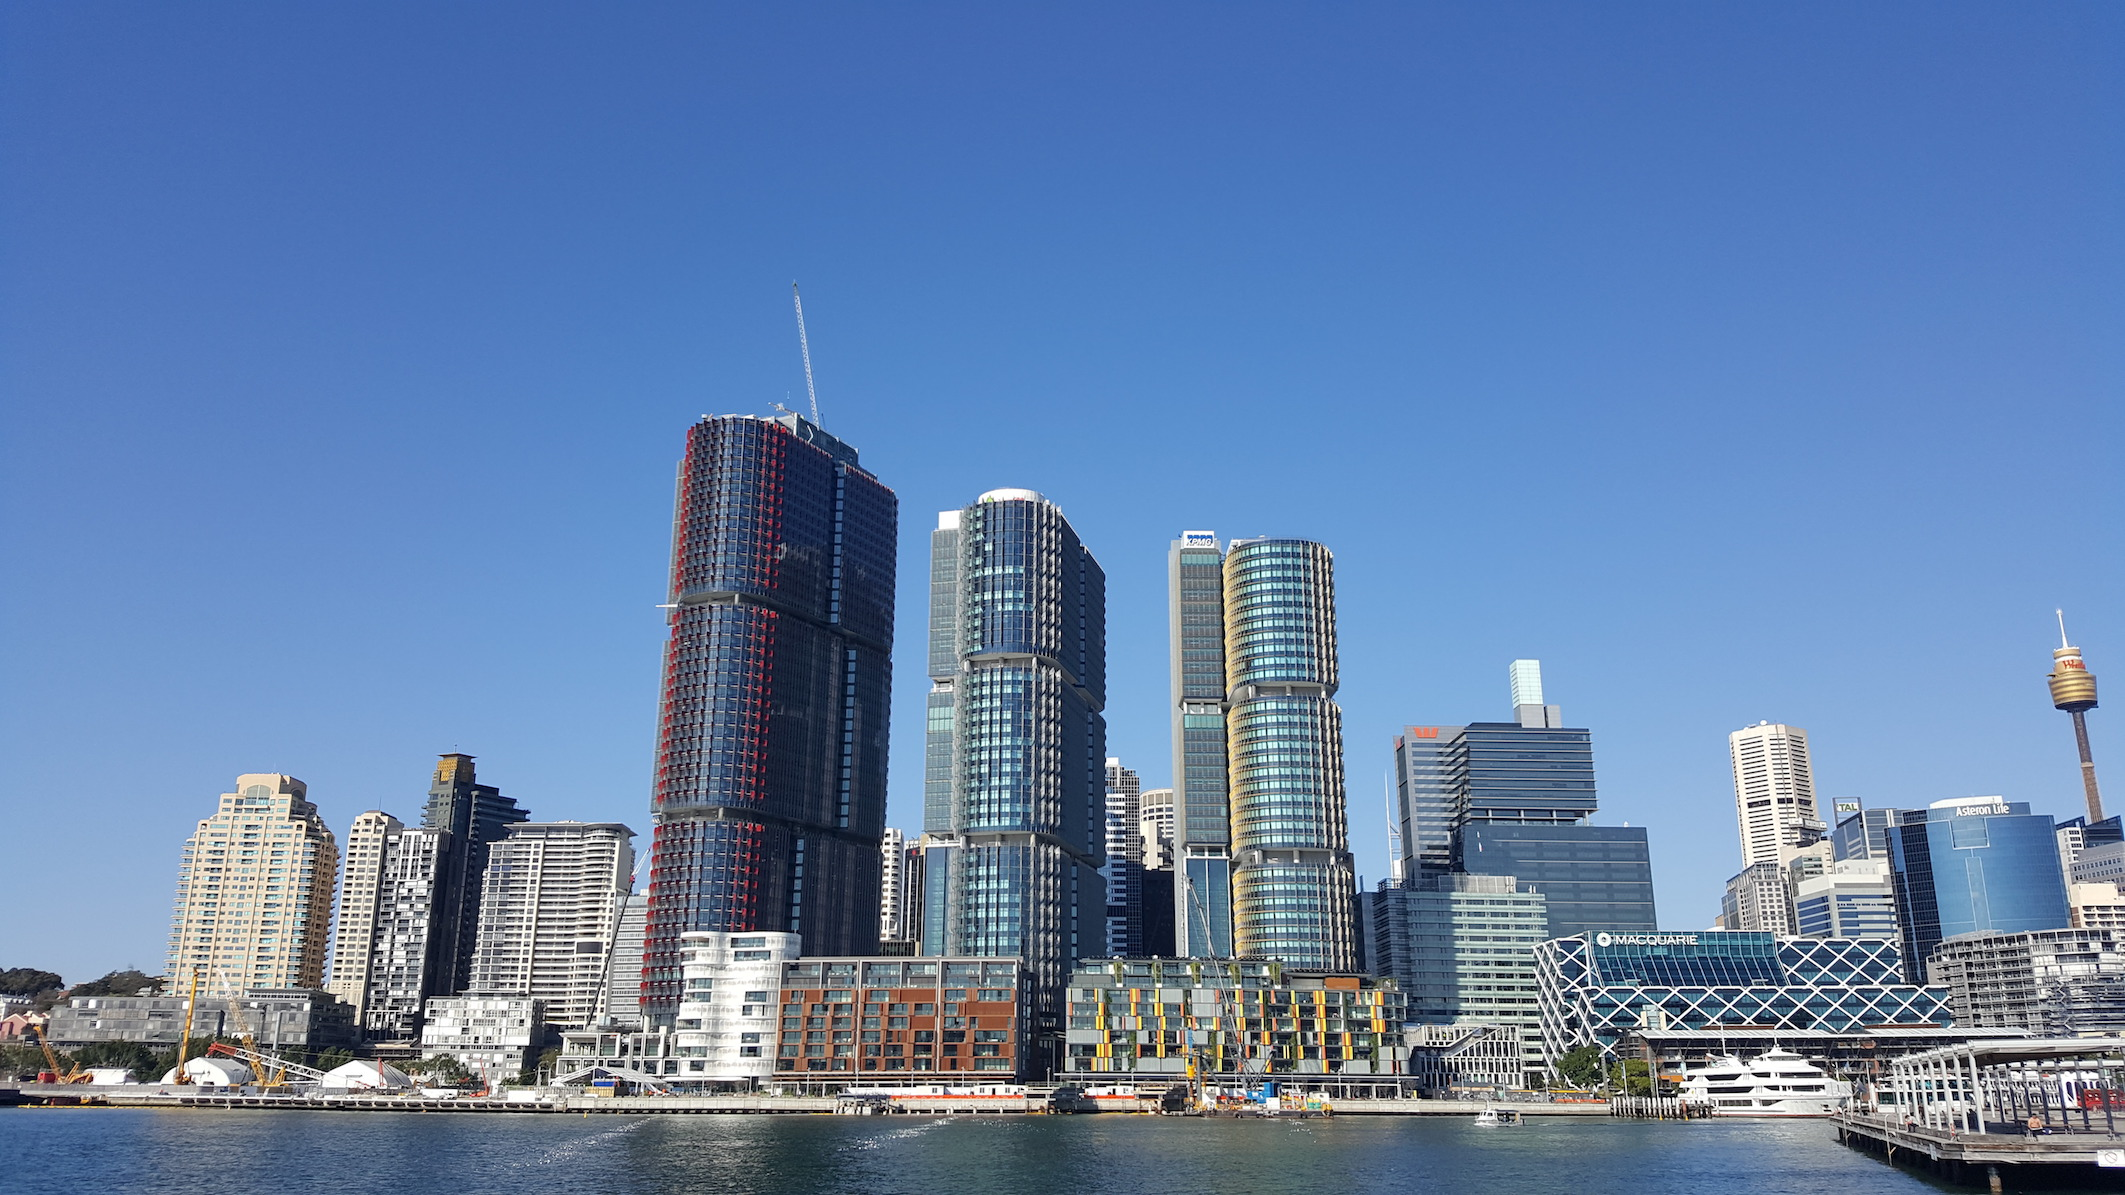 View across Sydney's city skyline from Pyrmont